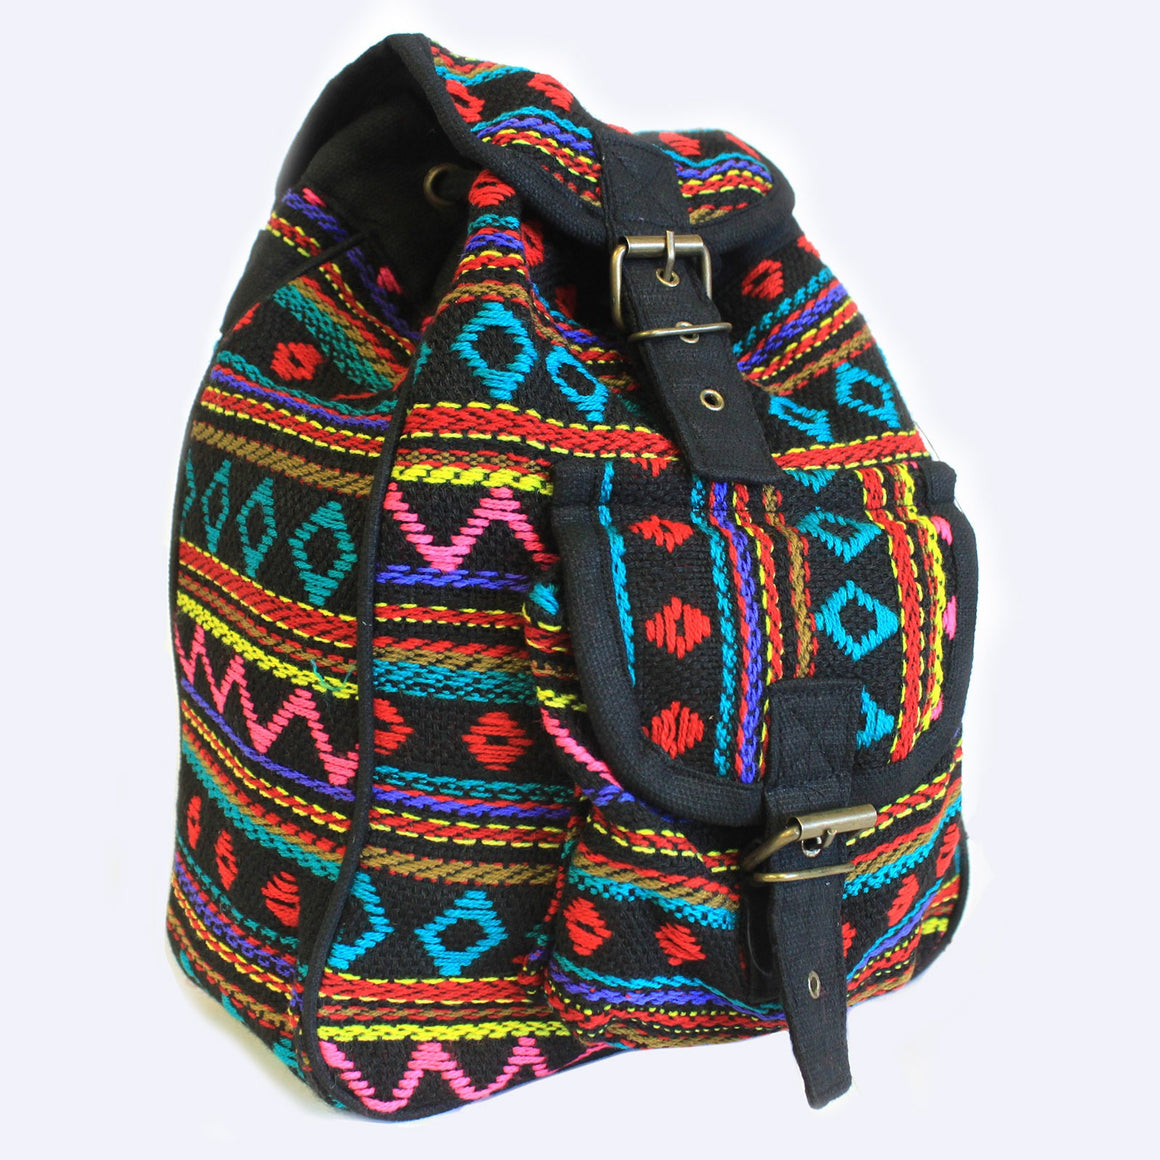 Small Nepali Backpacks - Turquoise Bag